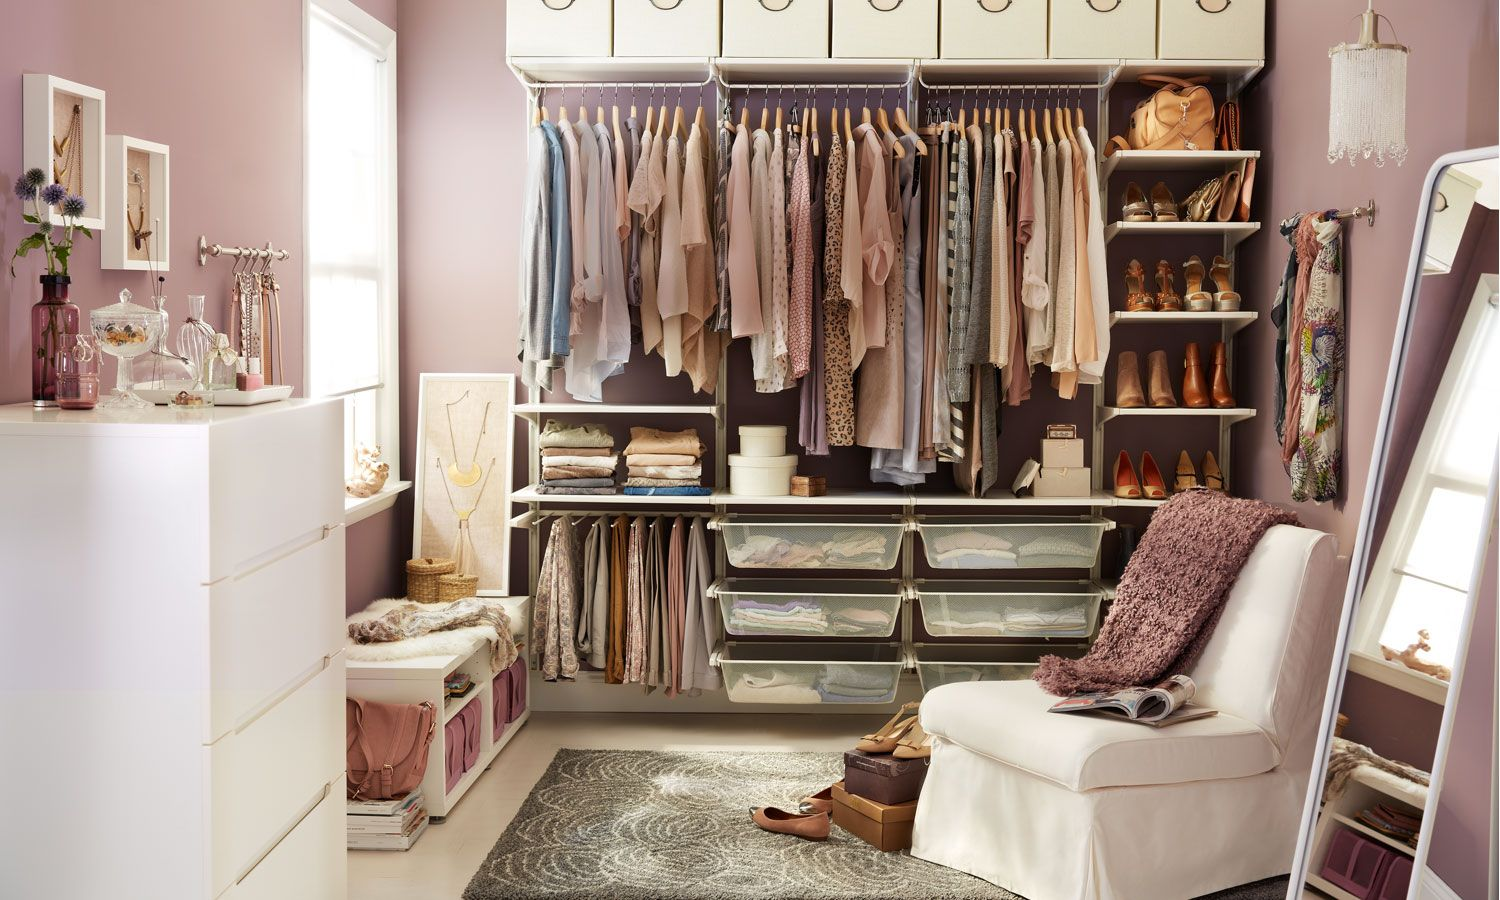 Cabina Armadio Algot Ikea.Have The Organized Closet Of Your Dreams With The Algot Storage